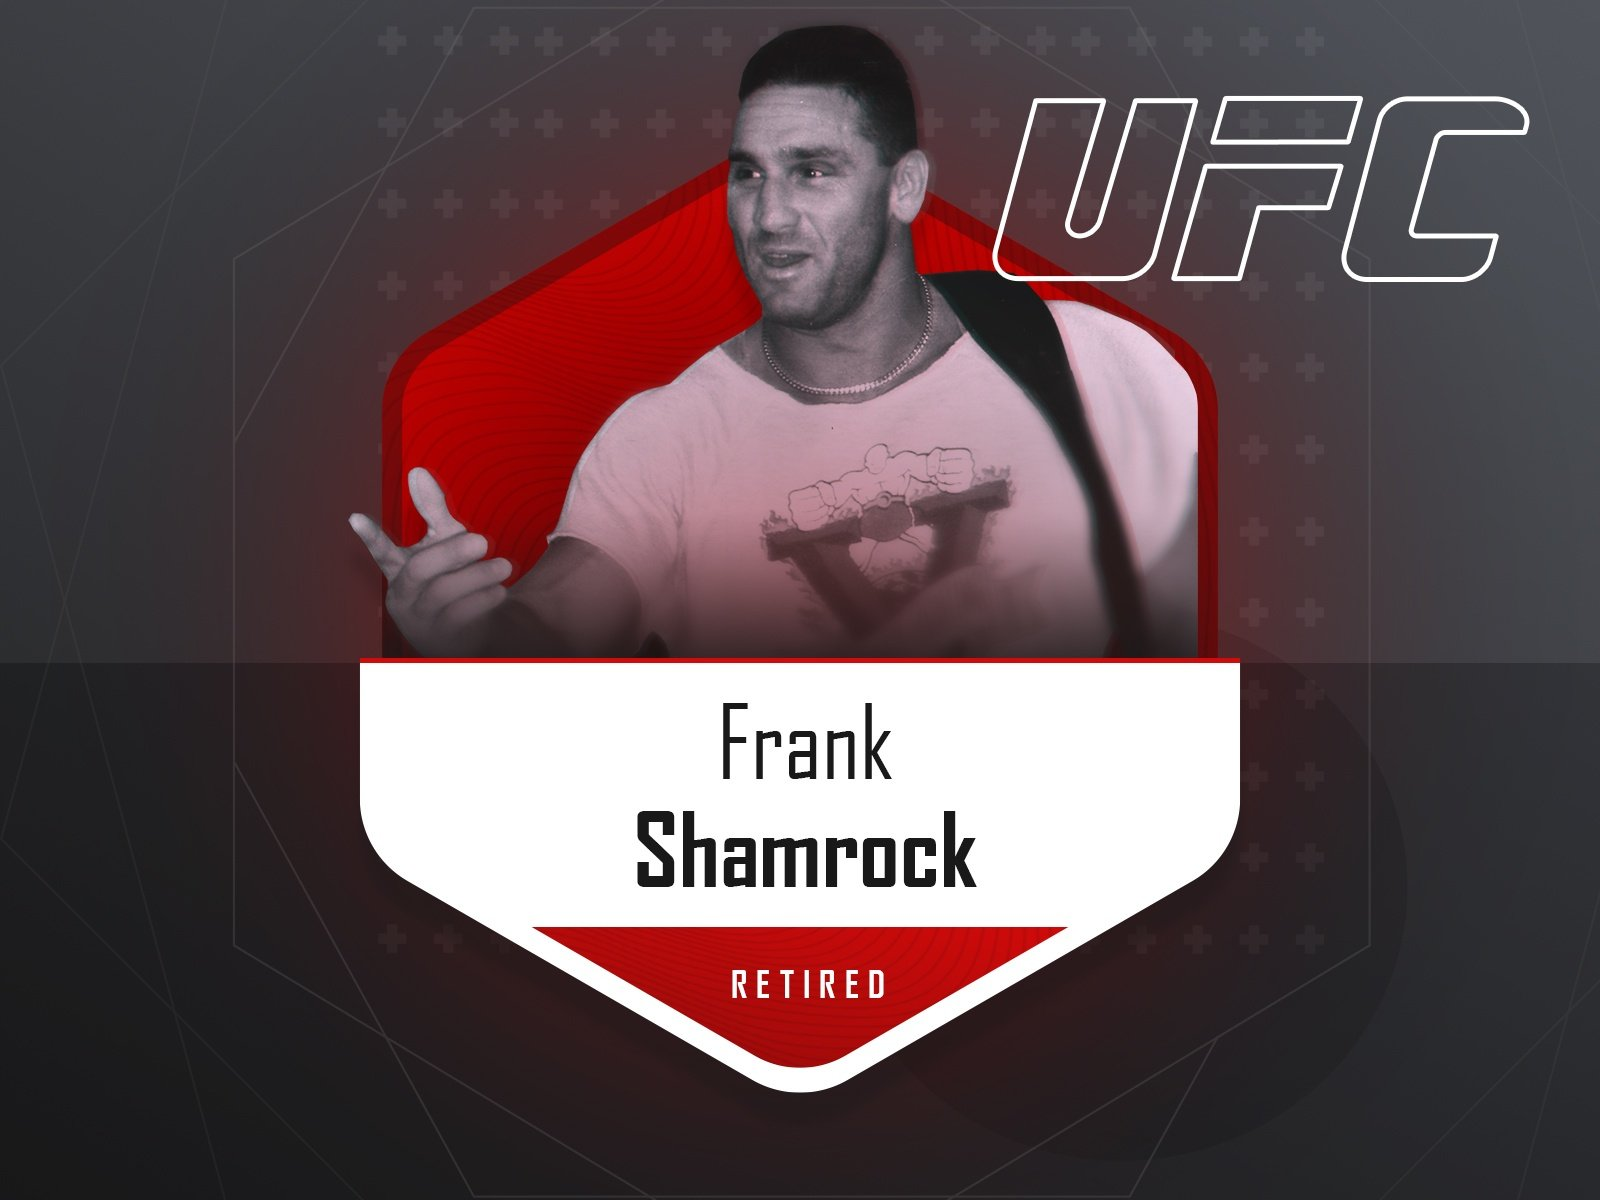 Frank Shamrock - UFC fighter